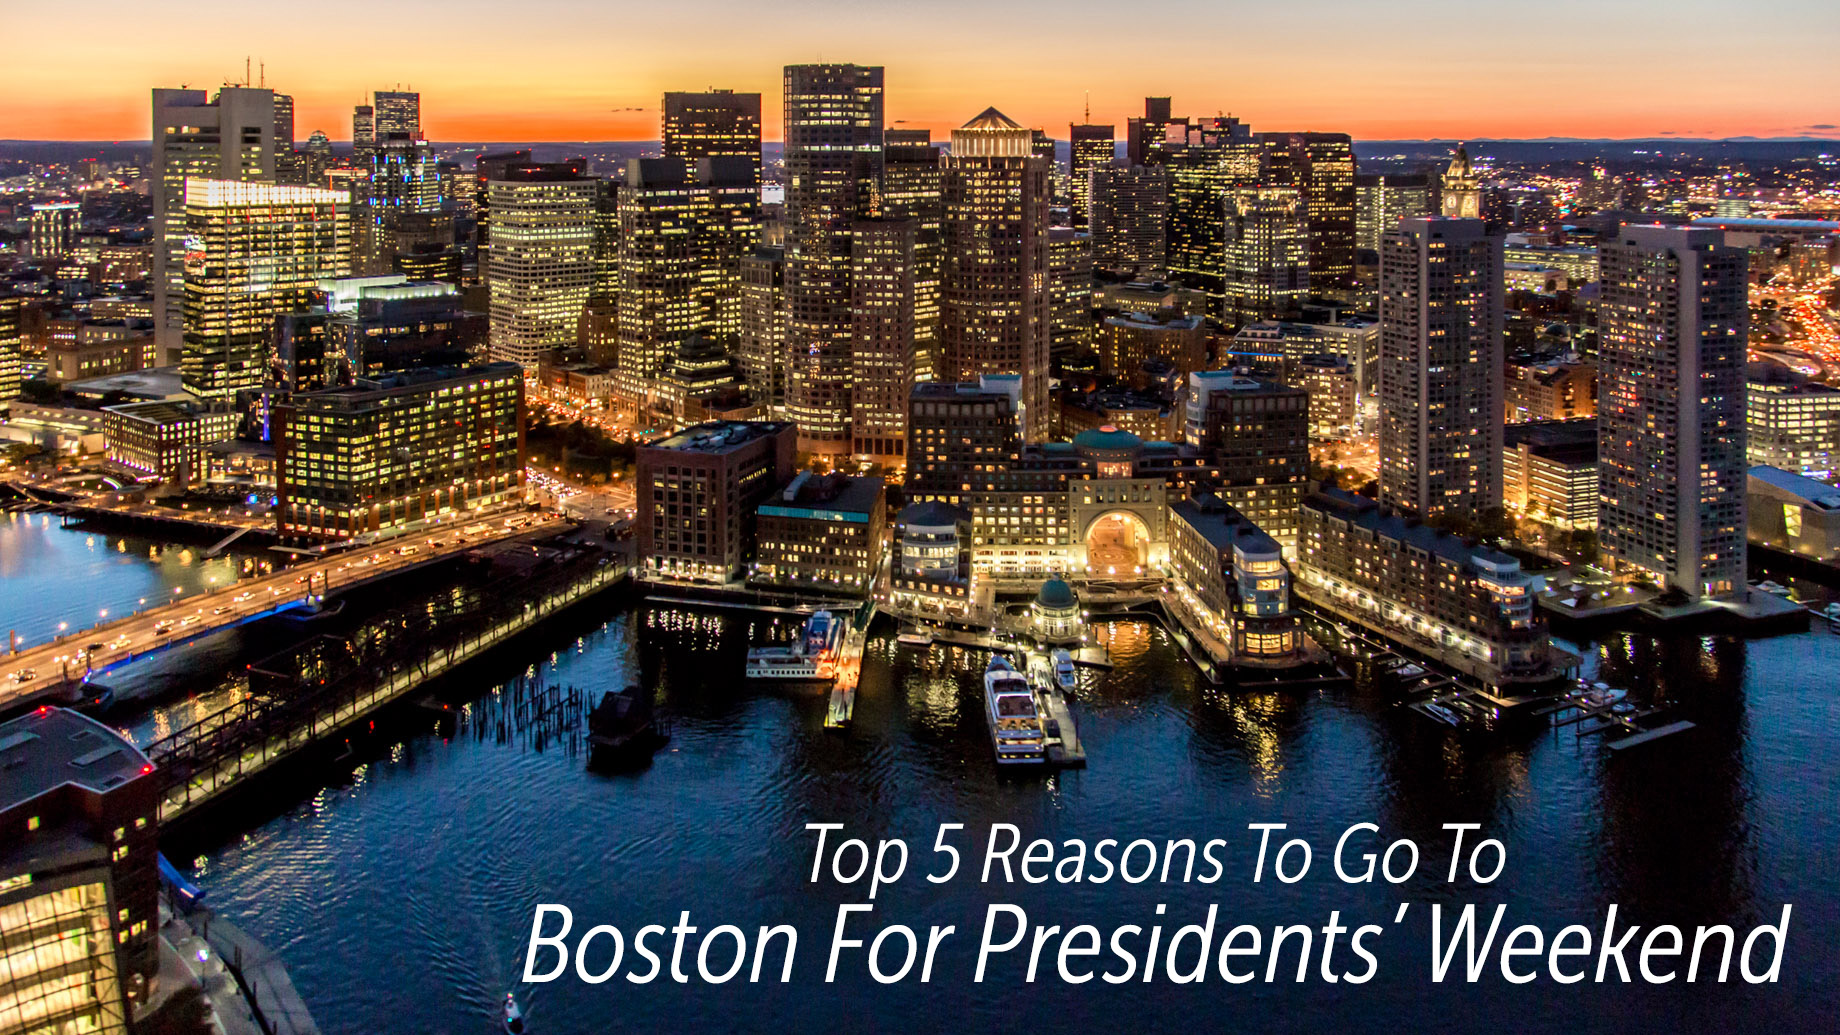 Top 5 Reasons To Go To Boston For Presidents' Weekend